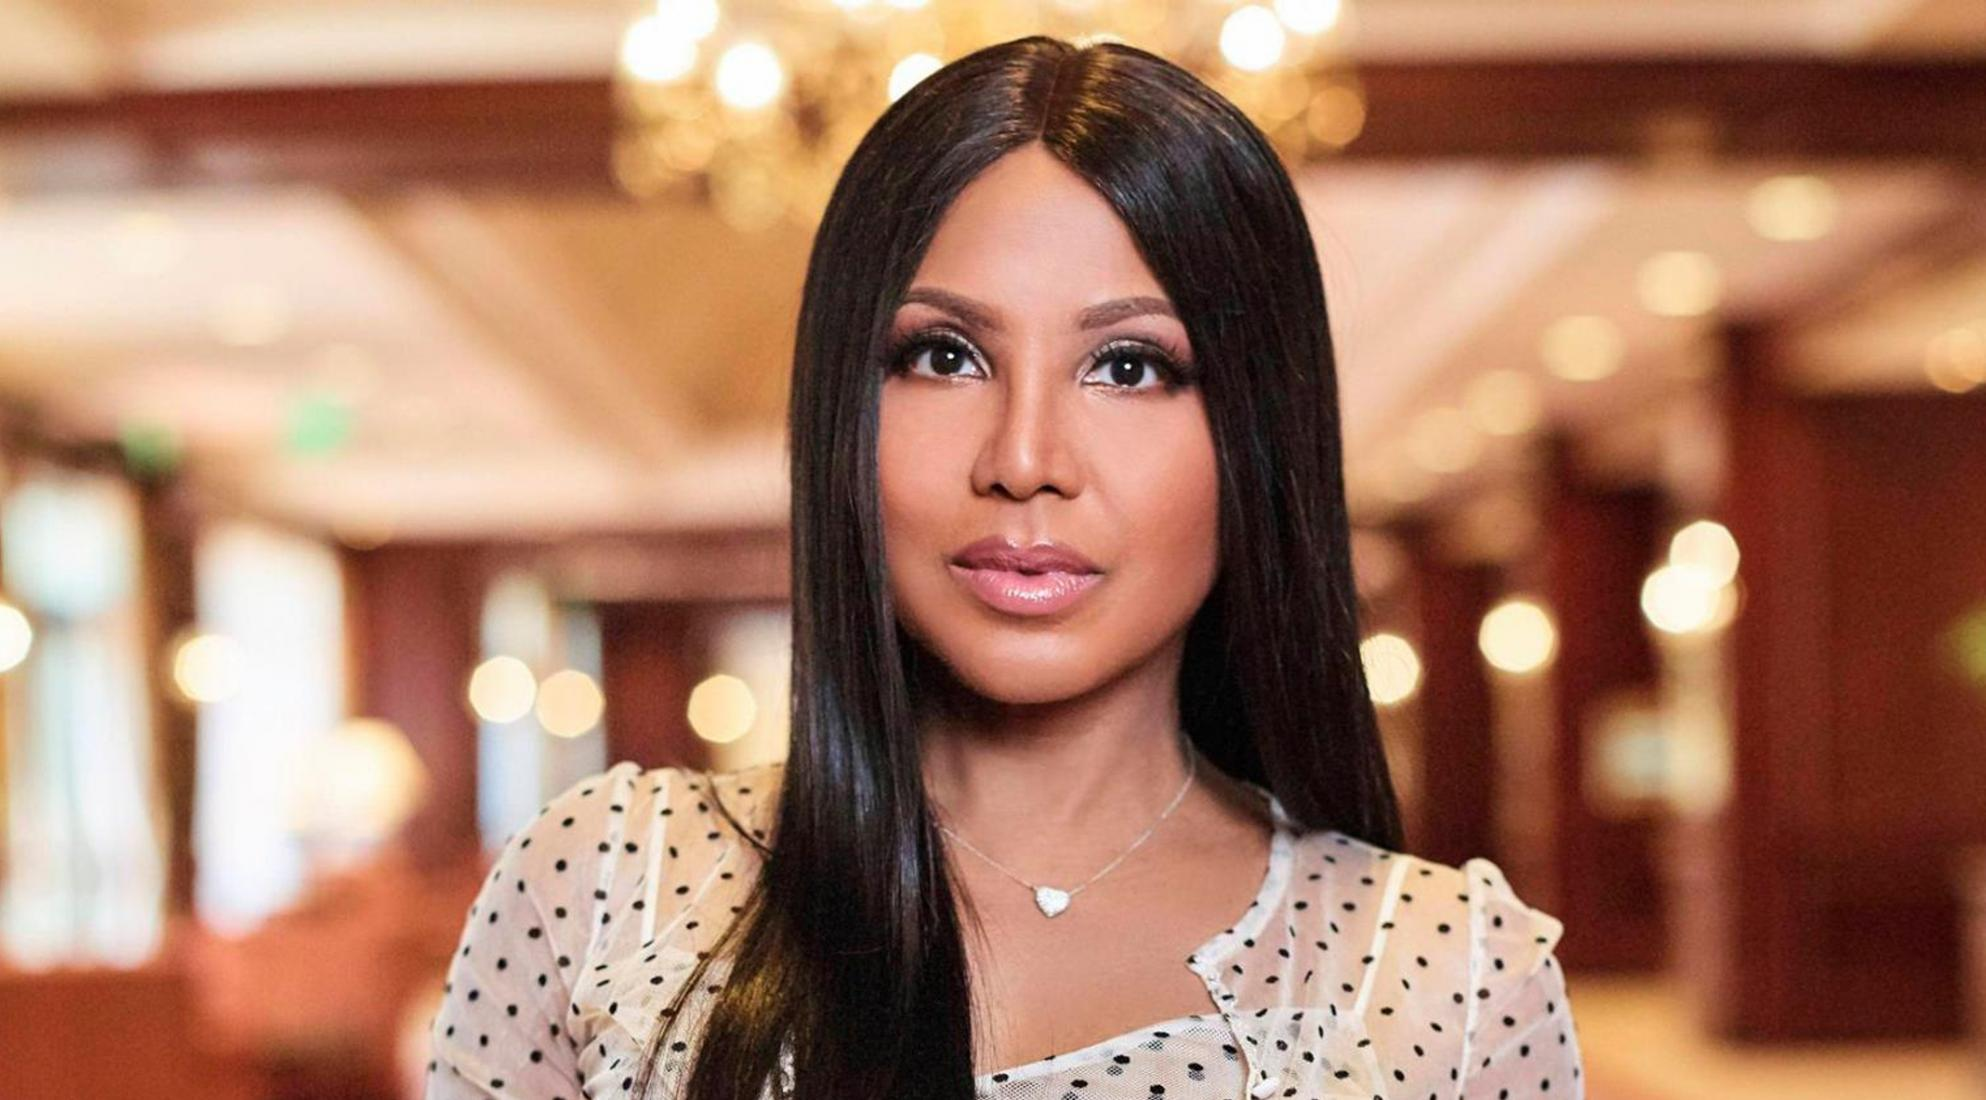 Toni Braxton Has Some Goodies For Her Fans - Check Out Her Recent Video